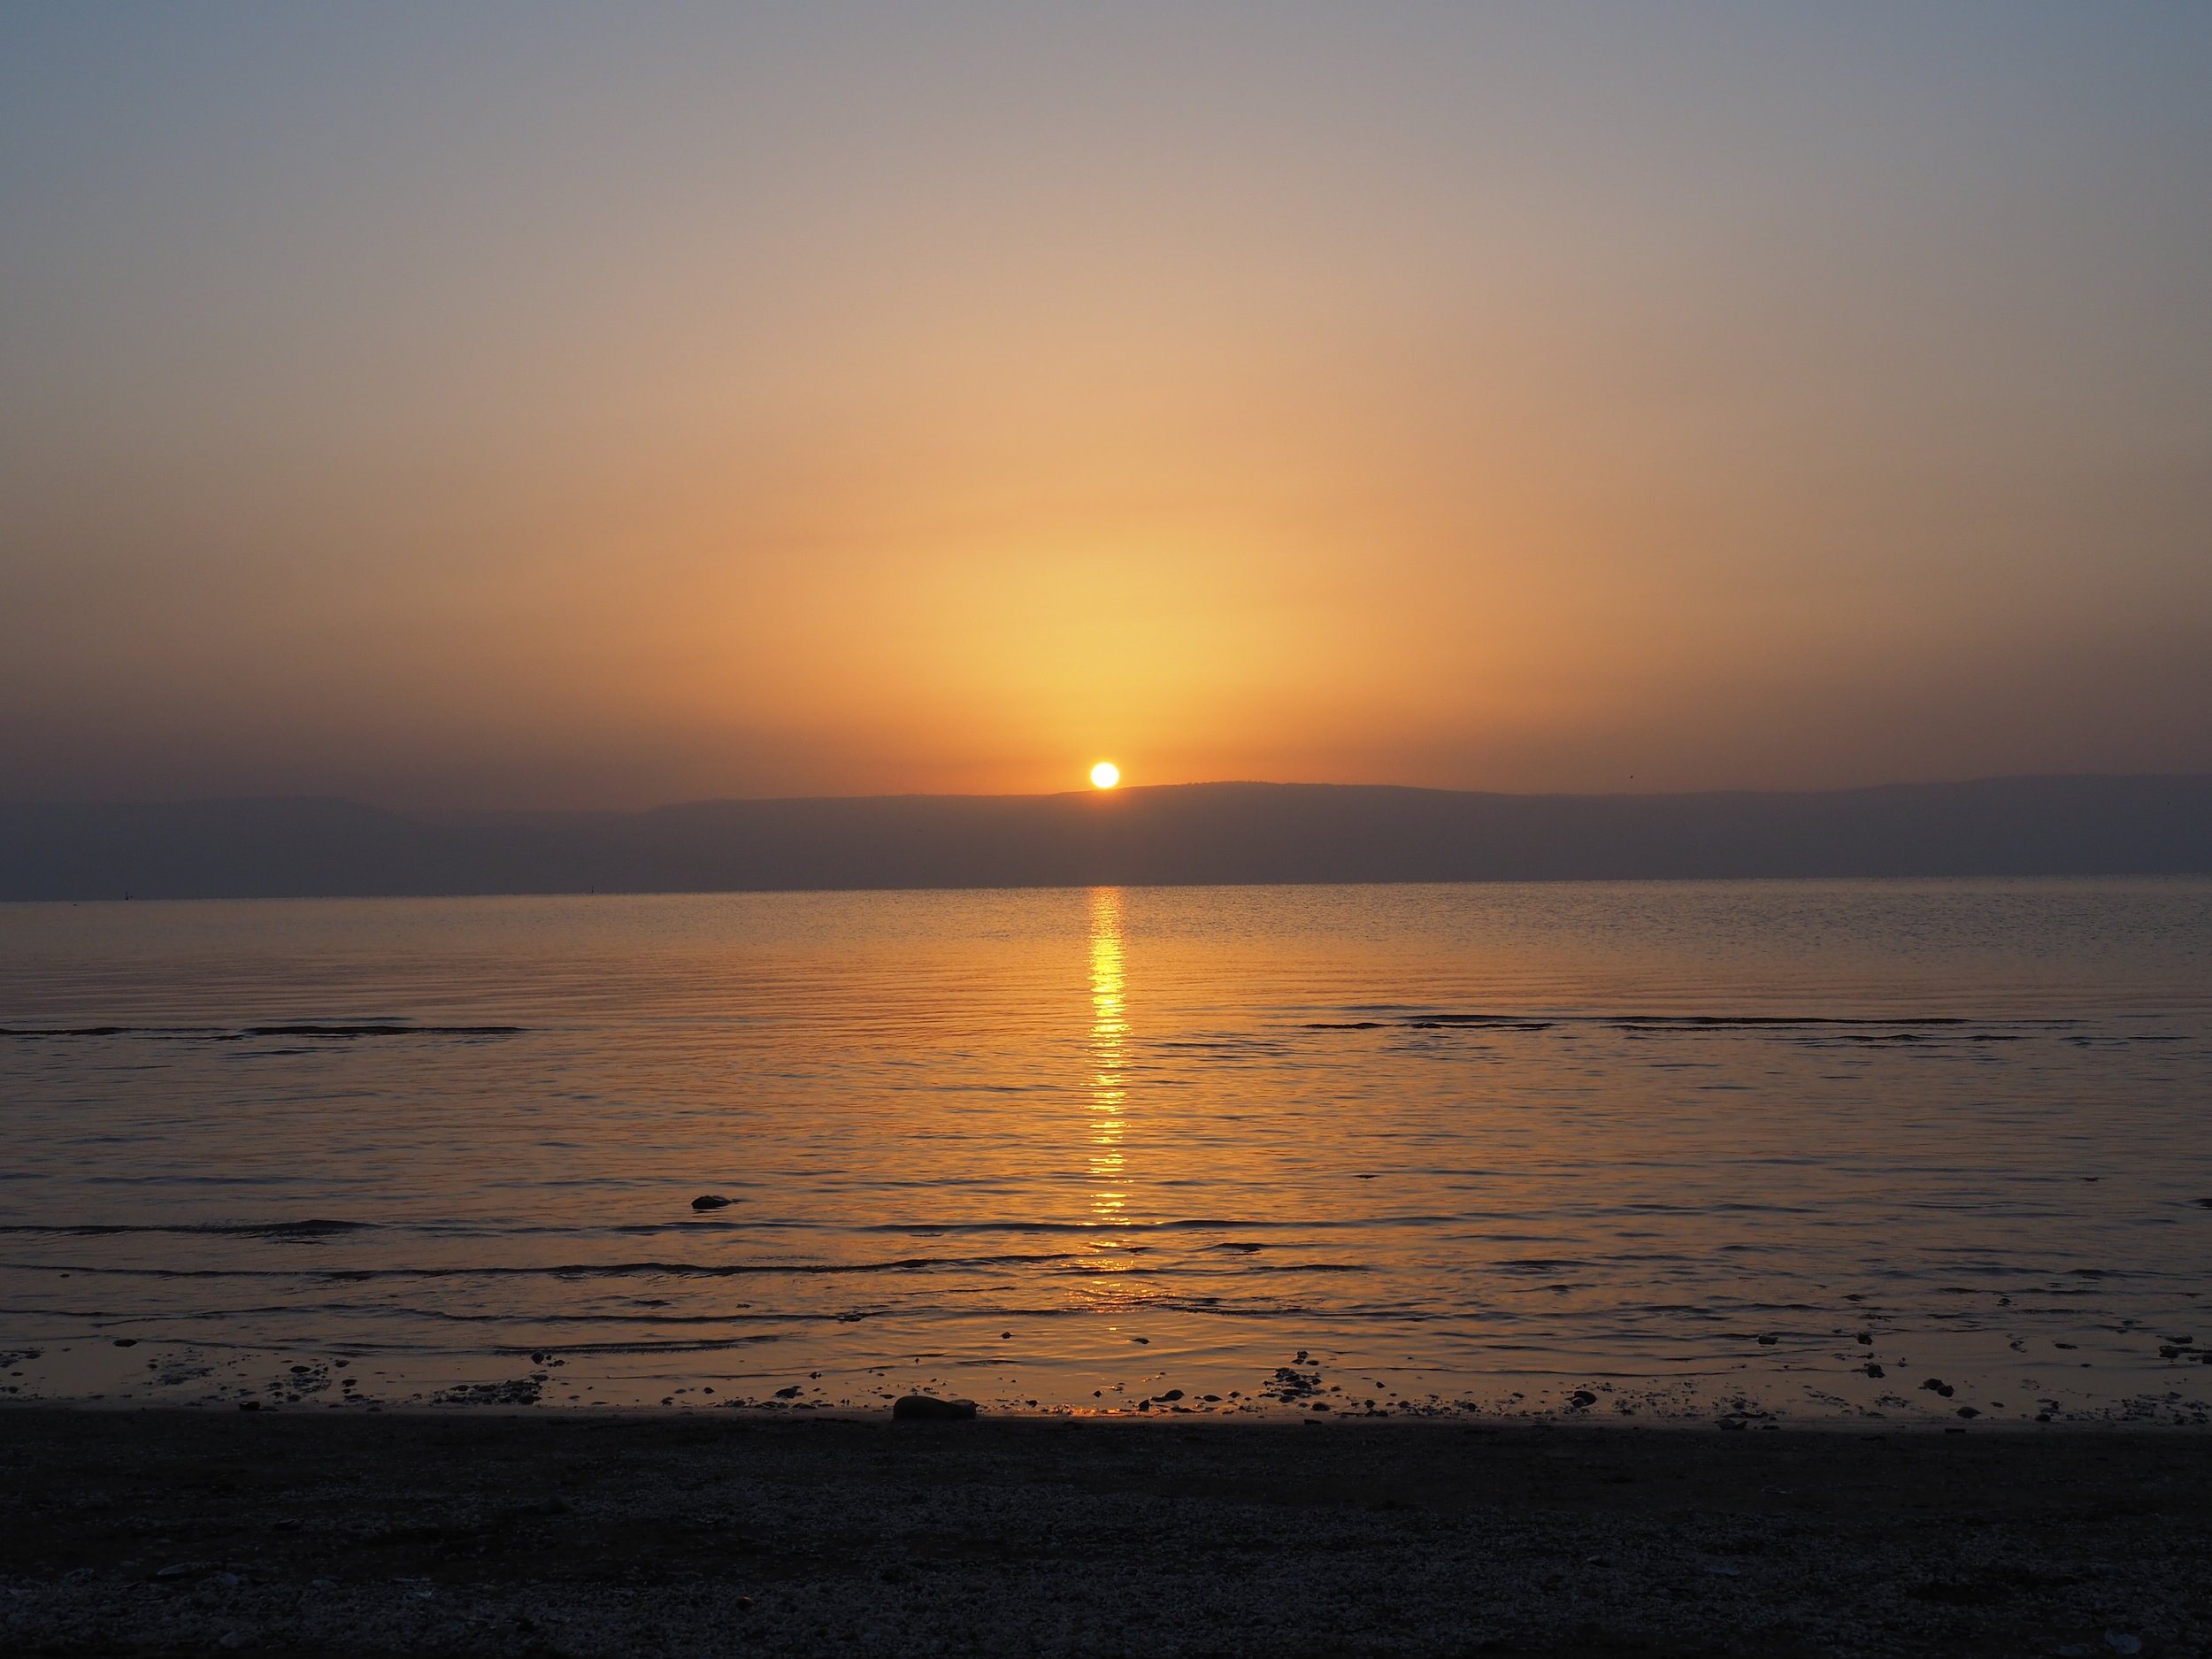 Sunrise Over the Sea of Galilee. Taken from modern day Tiberias, in what would have been part of ancient settlement of the tribe of Naphtali.